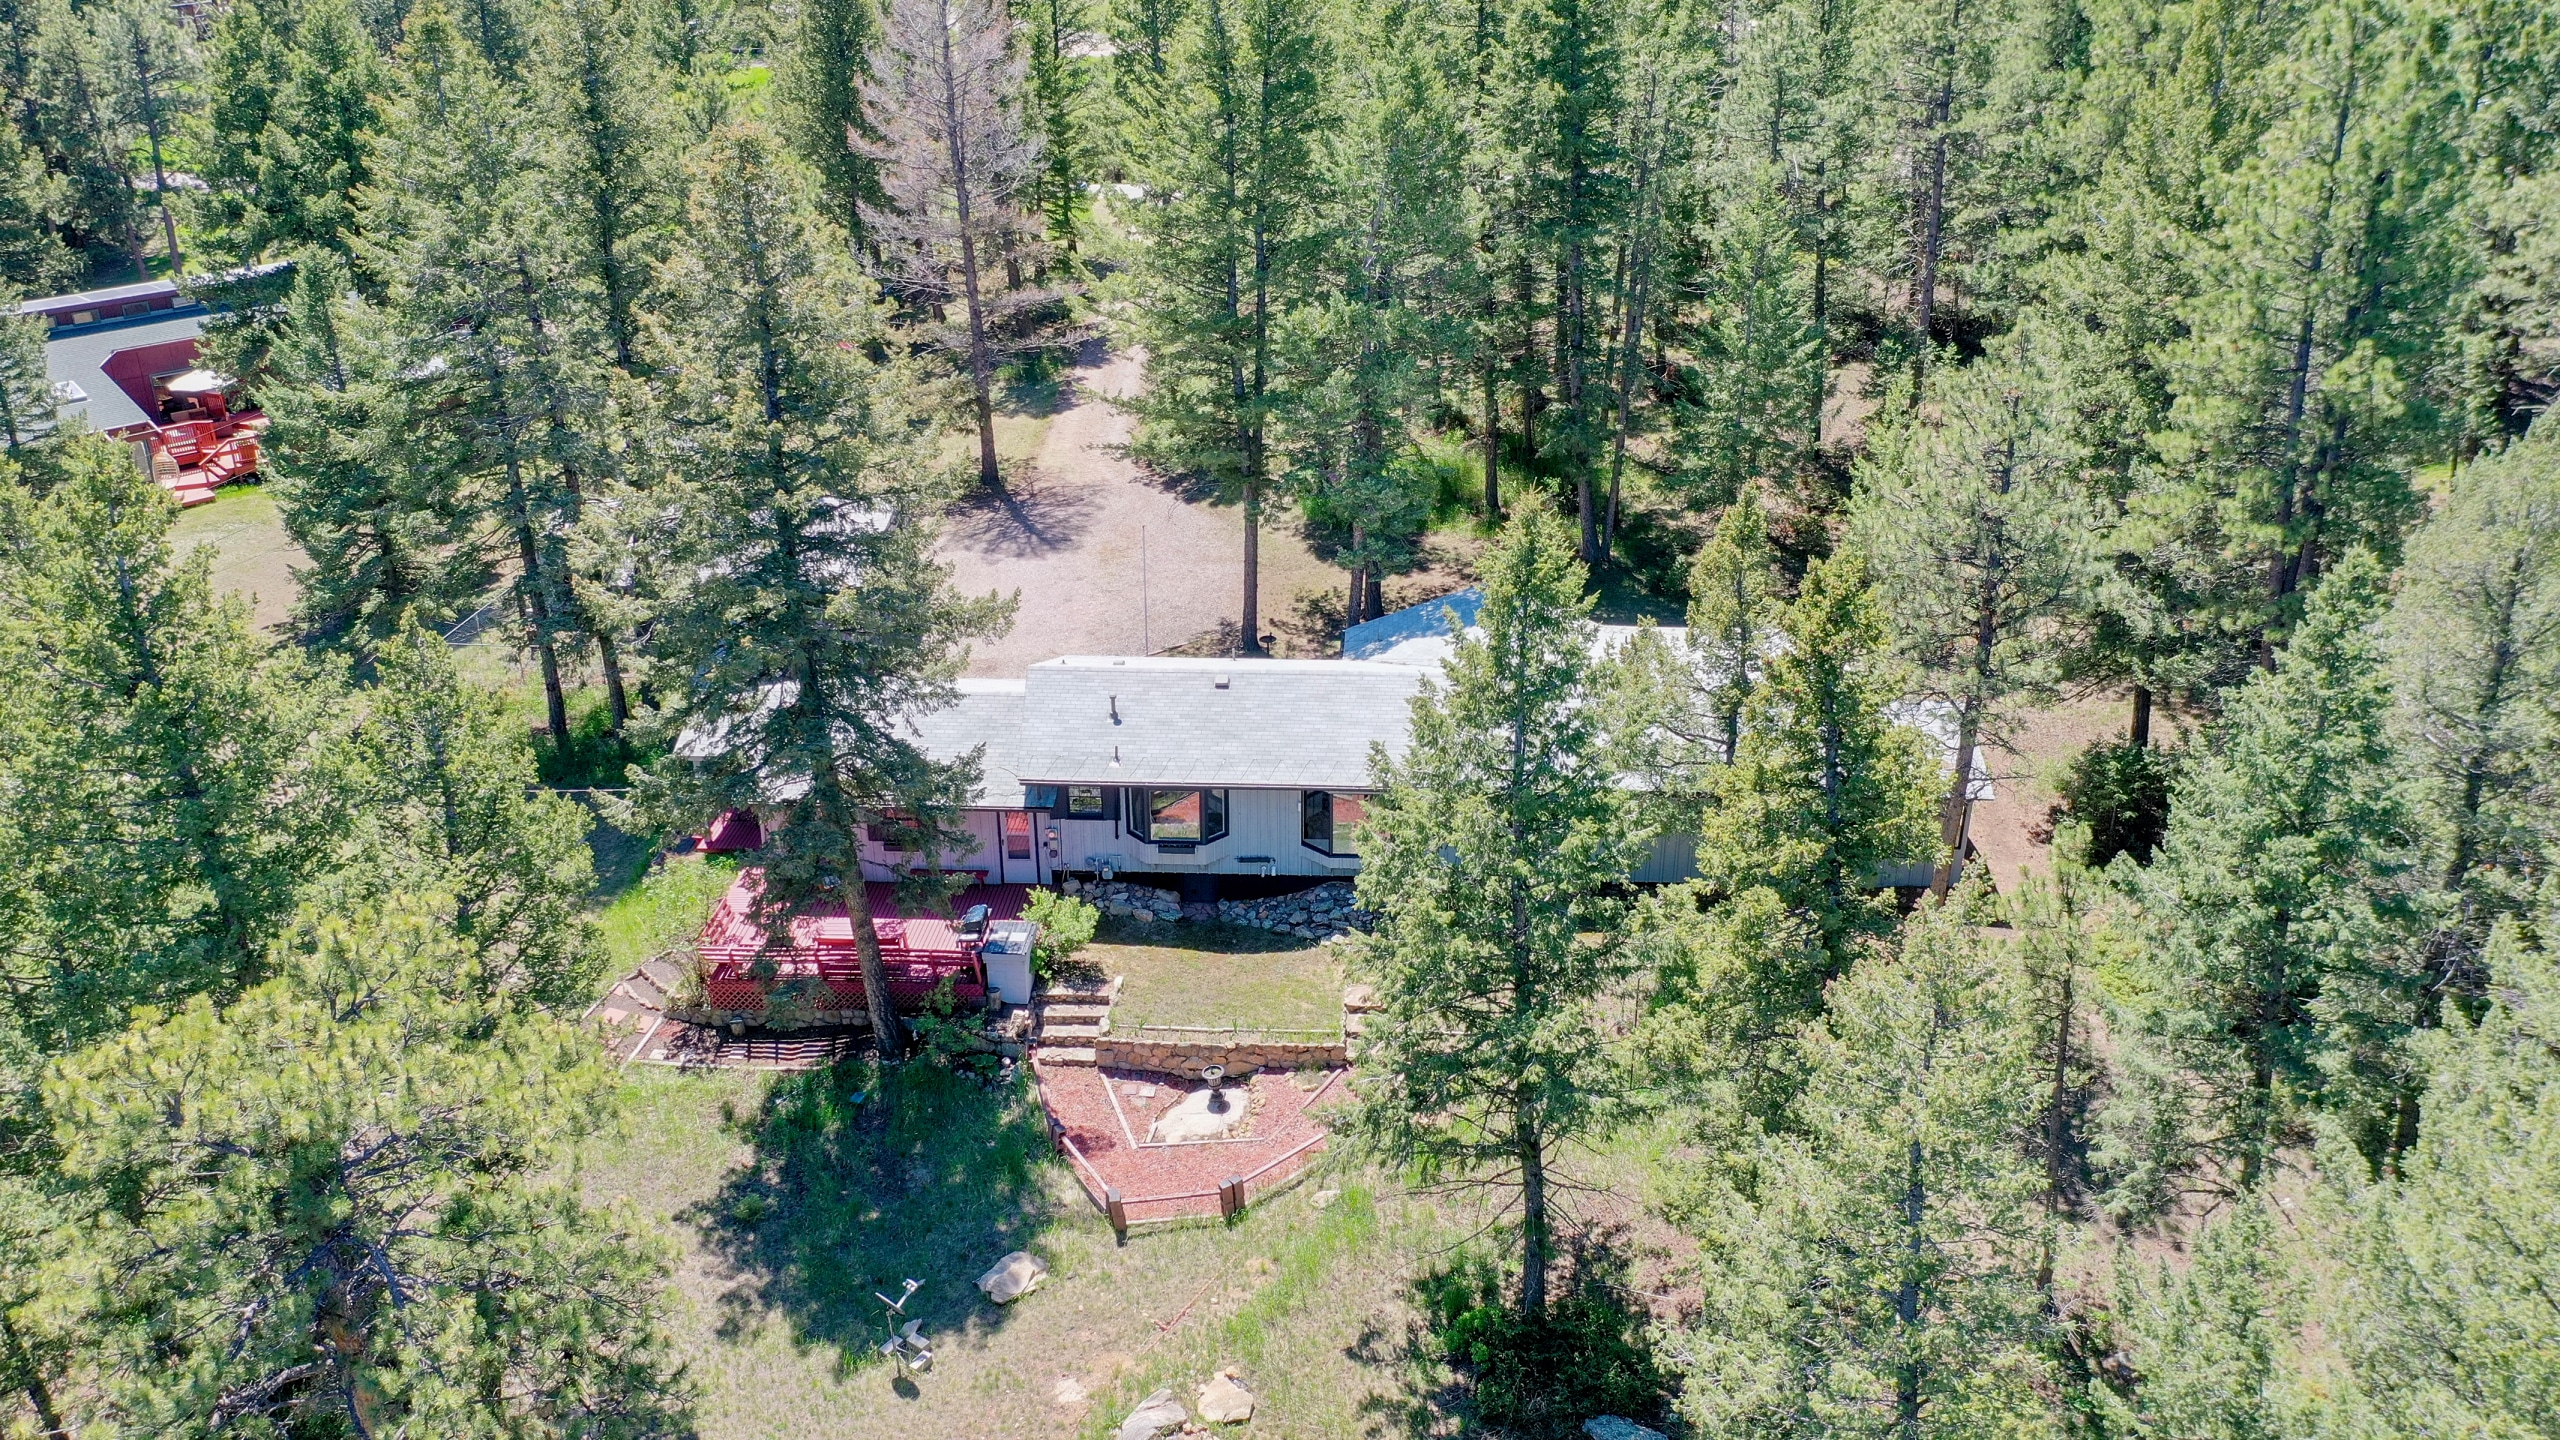 Aerial View of Home in Evergreen